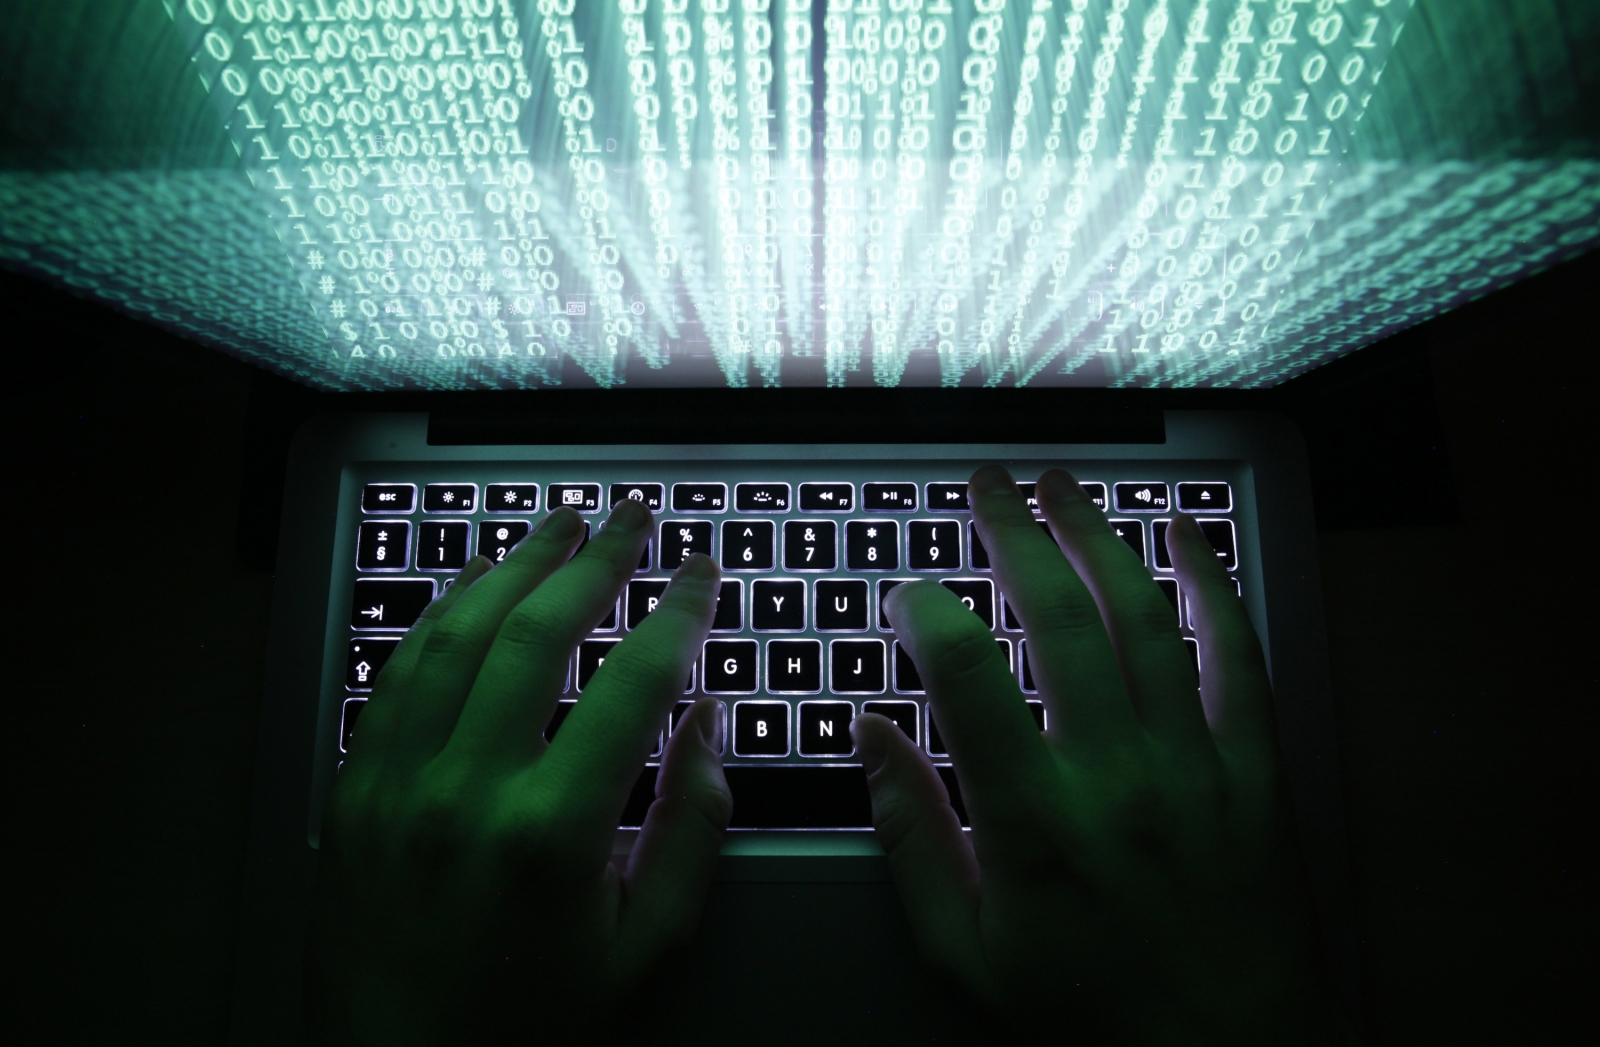 New DDoS botnet army could rival Mirai in launching large-scale attacks targeting parts of US